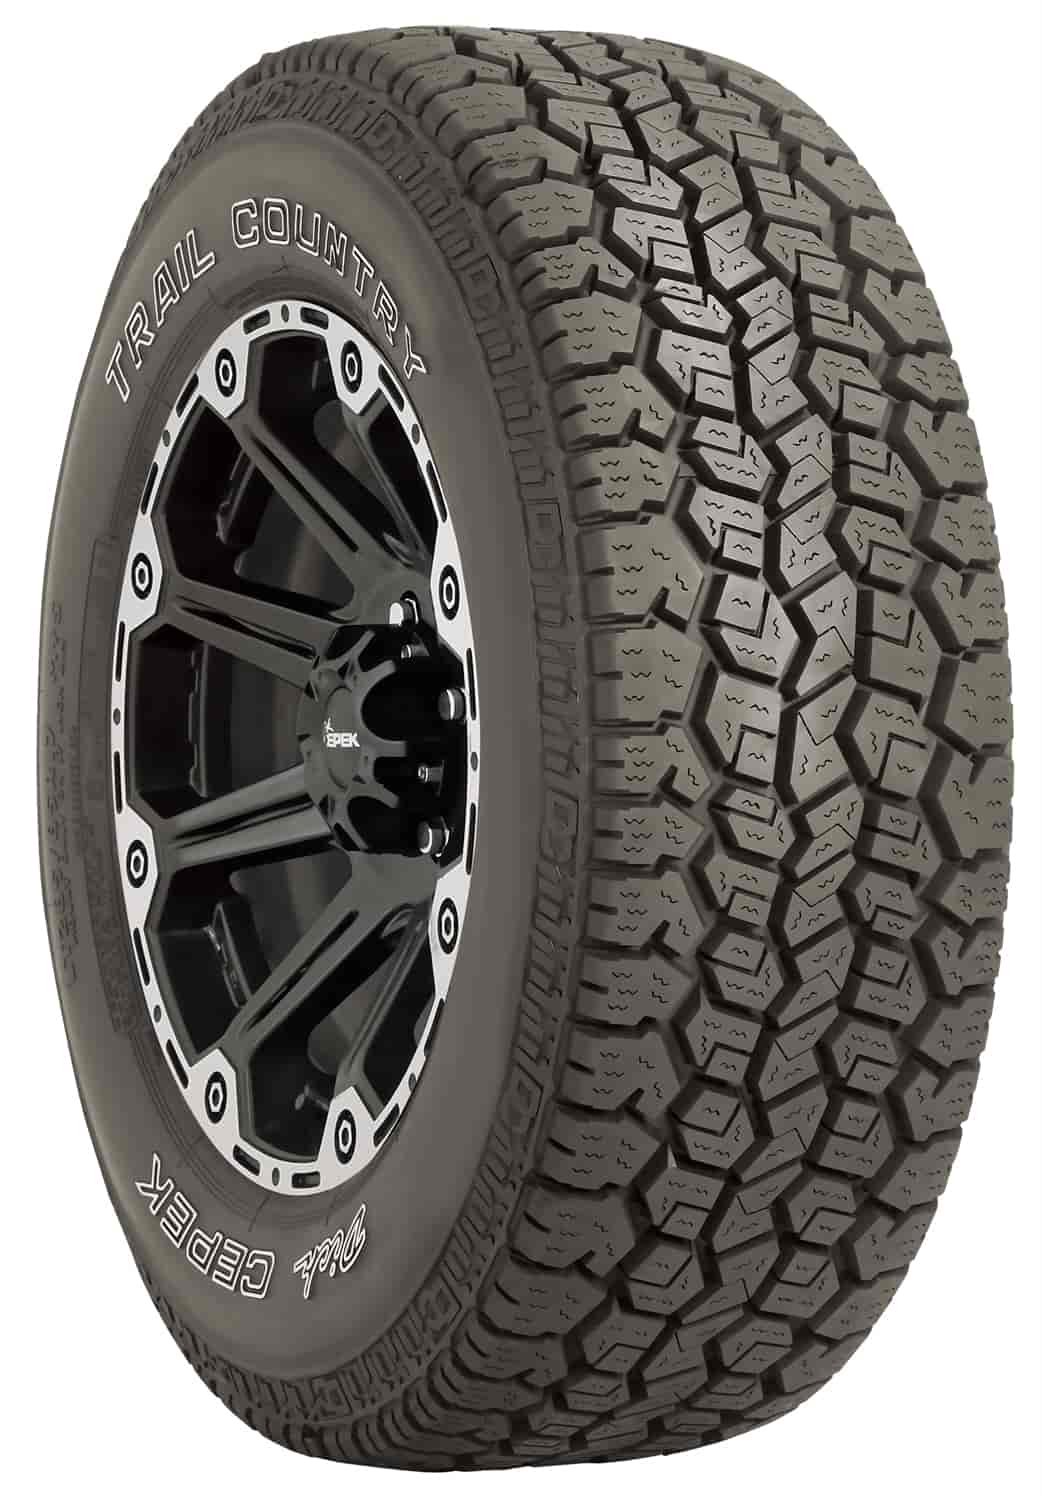 265 70r17 All Terrain Tires >> Details About Mickey Thompson 70731 Trail Country All Terrain Tire 265 70r17